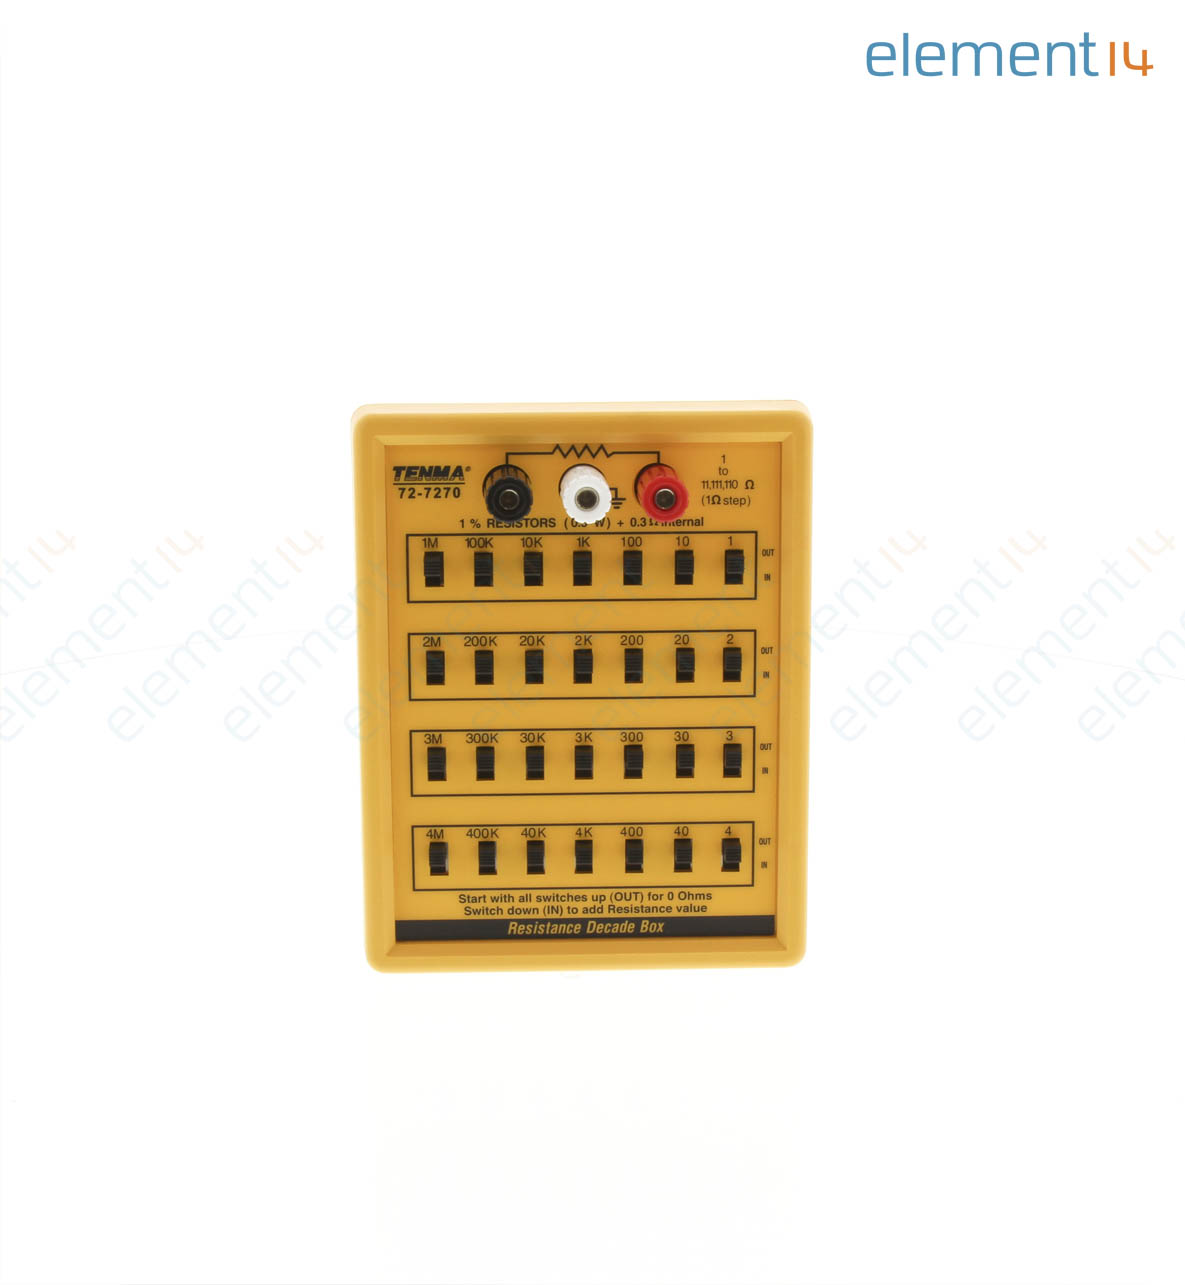 72 7270 Tenma Decade Box Resistance 7 Electronics Learning Circuits Webonly Products Technology Add To Compare